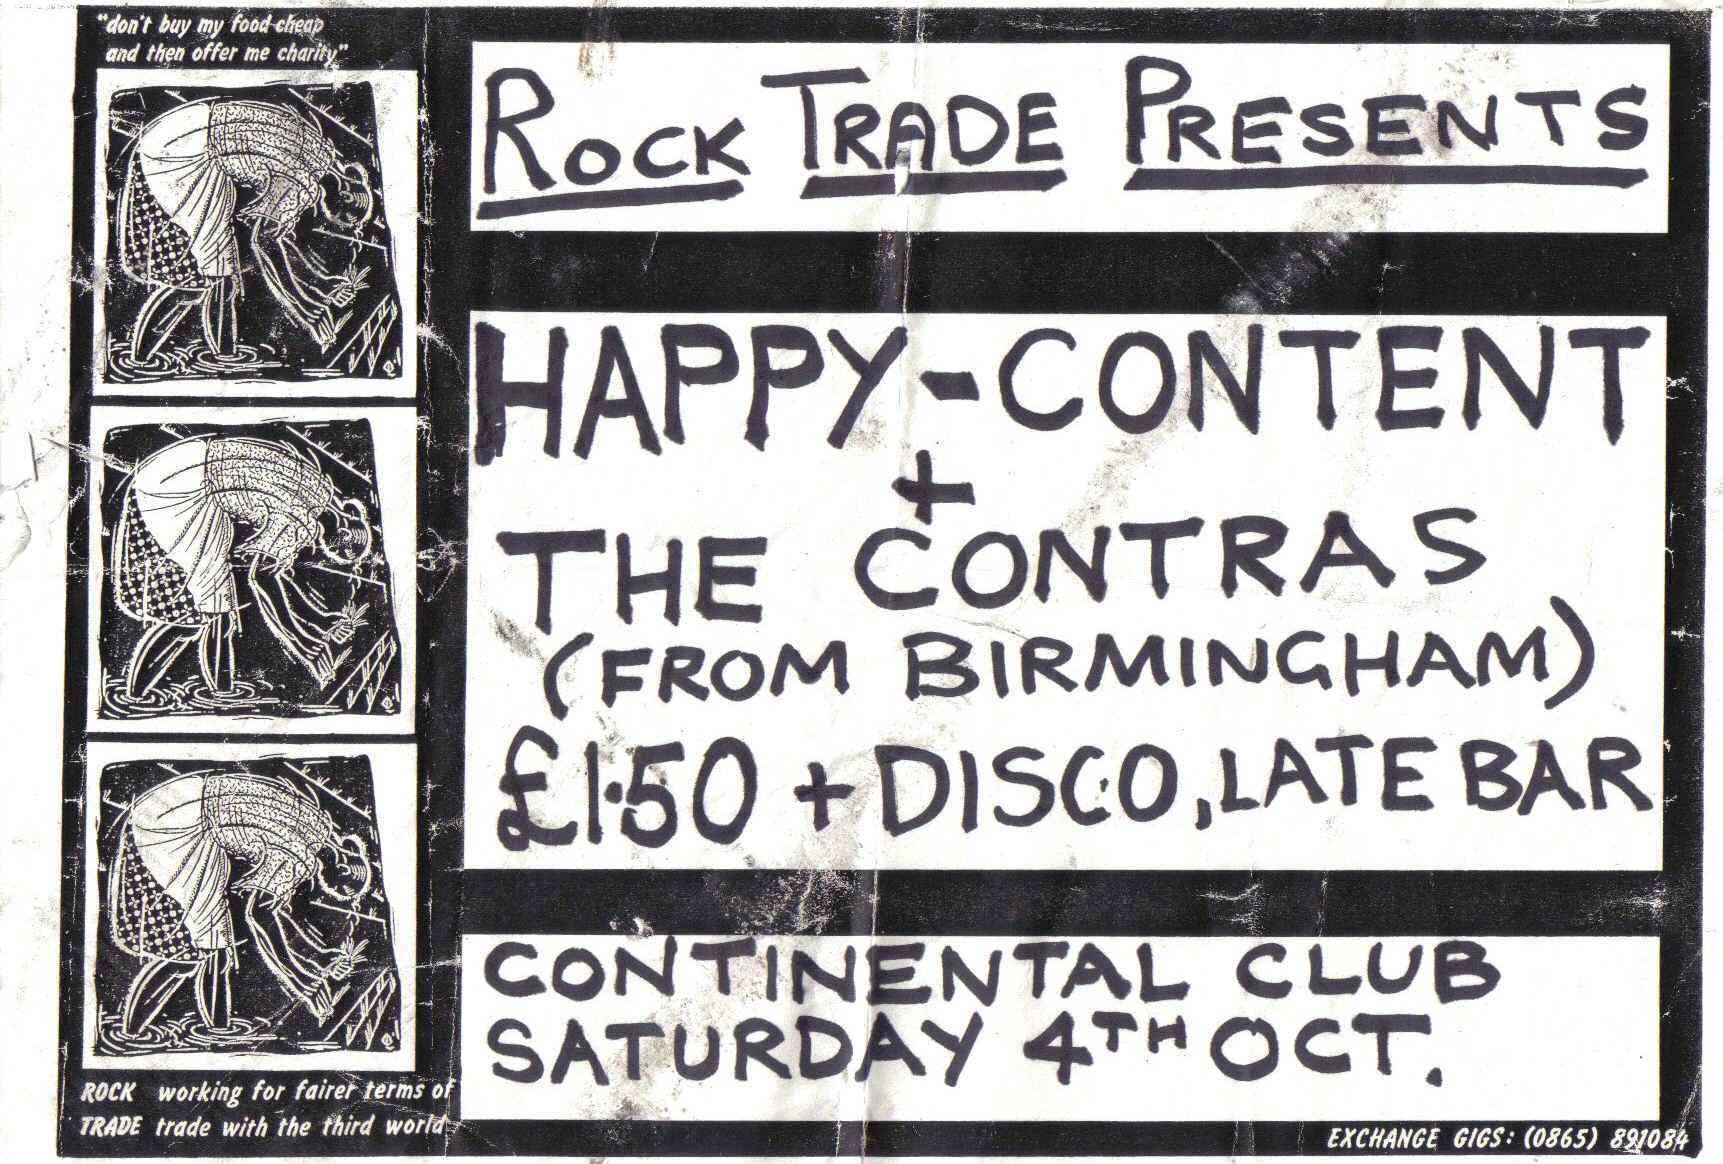 4th Oct 1986 Poster